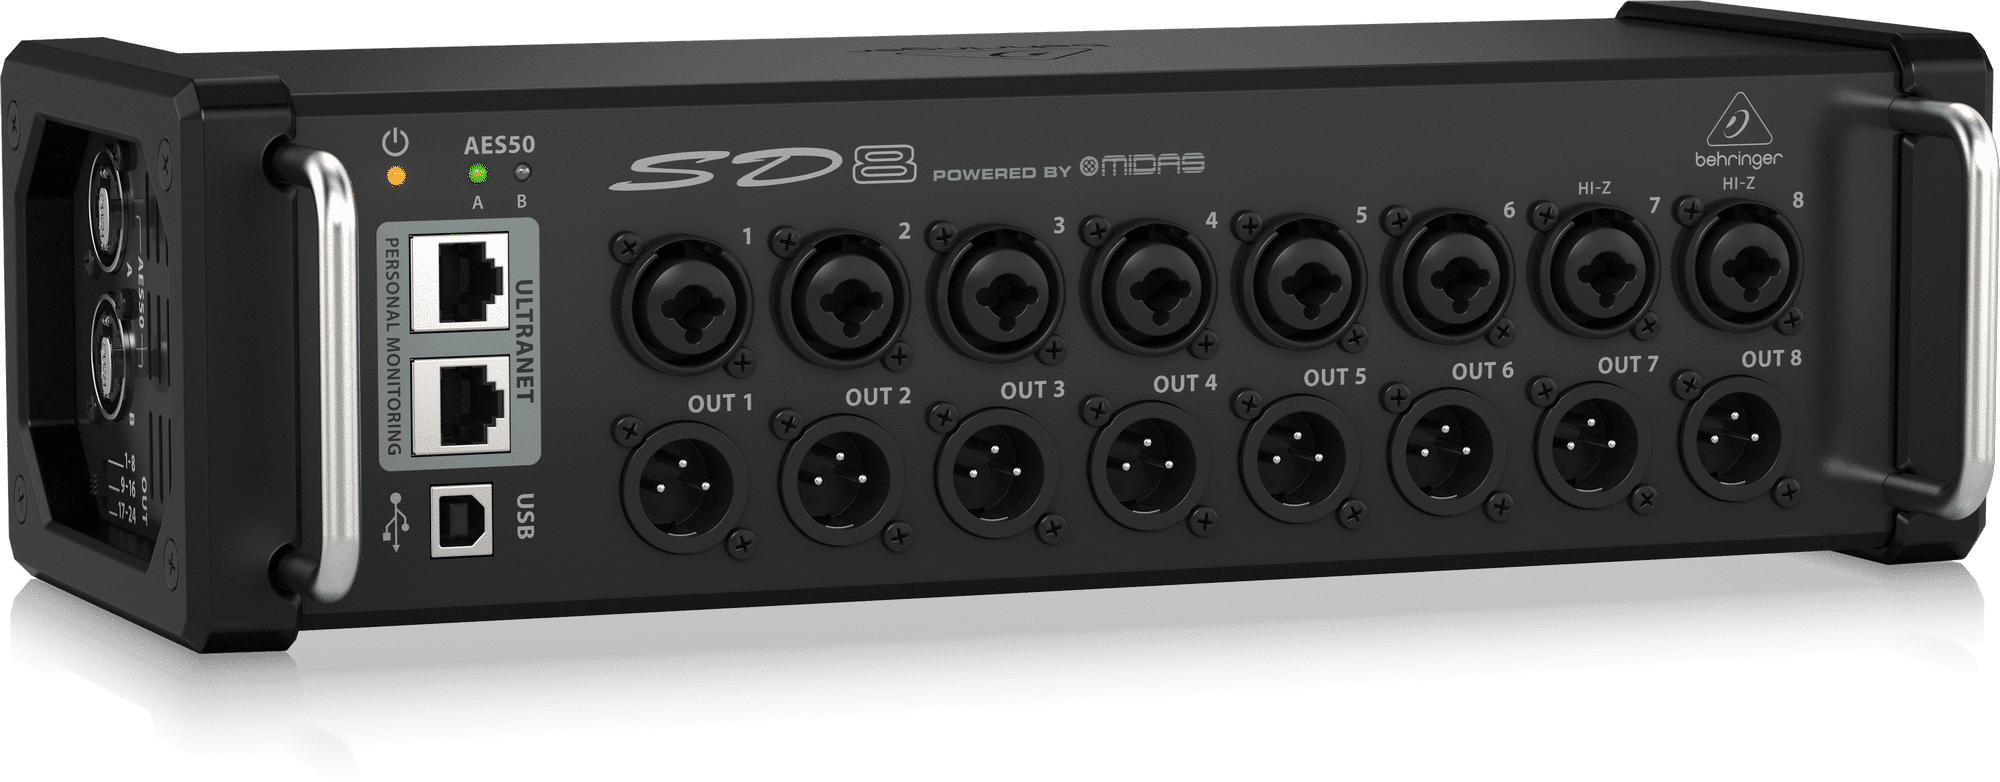 behringer-sd8-i-o-stage-box-with-8-remote-controllable-midas-preamps MAIN